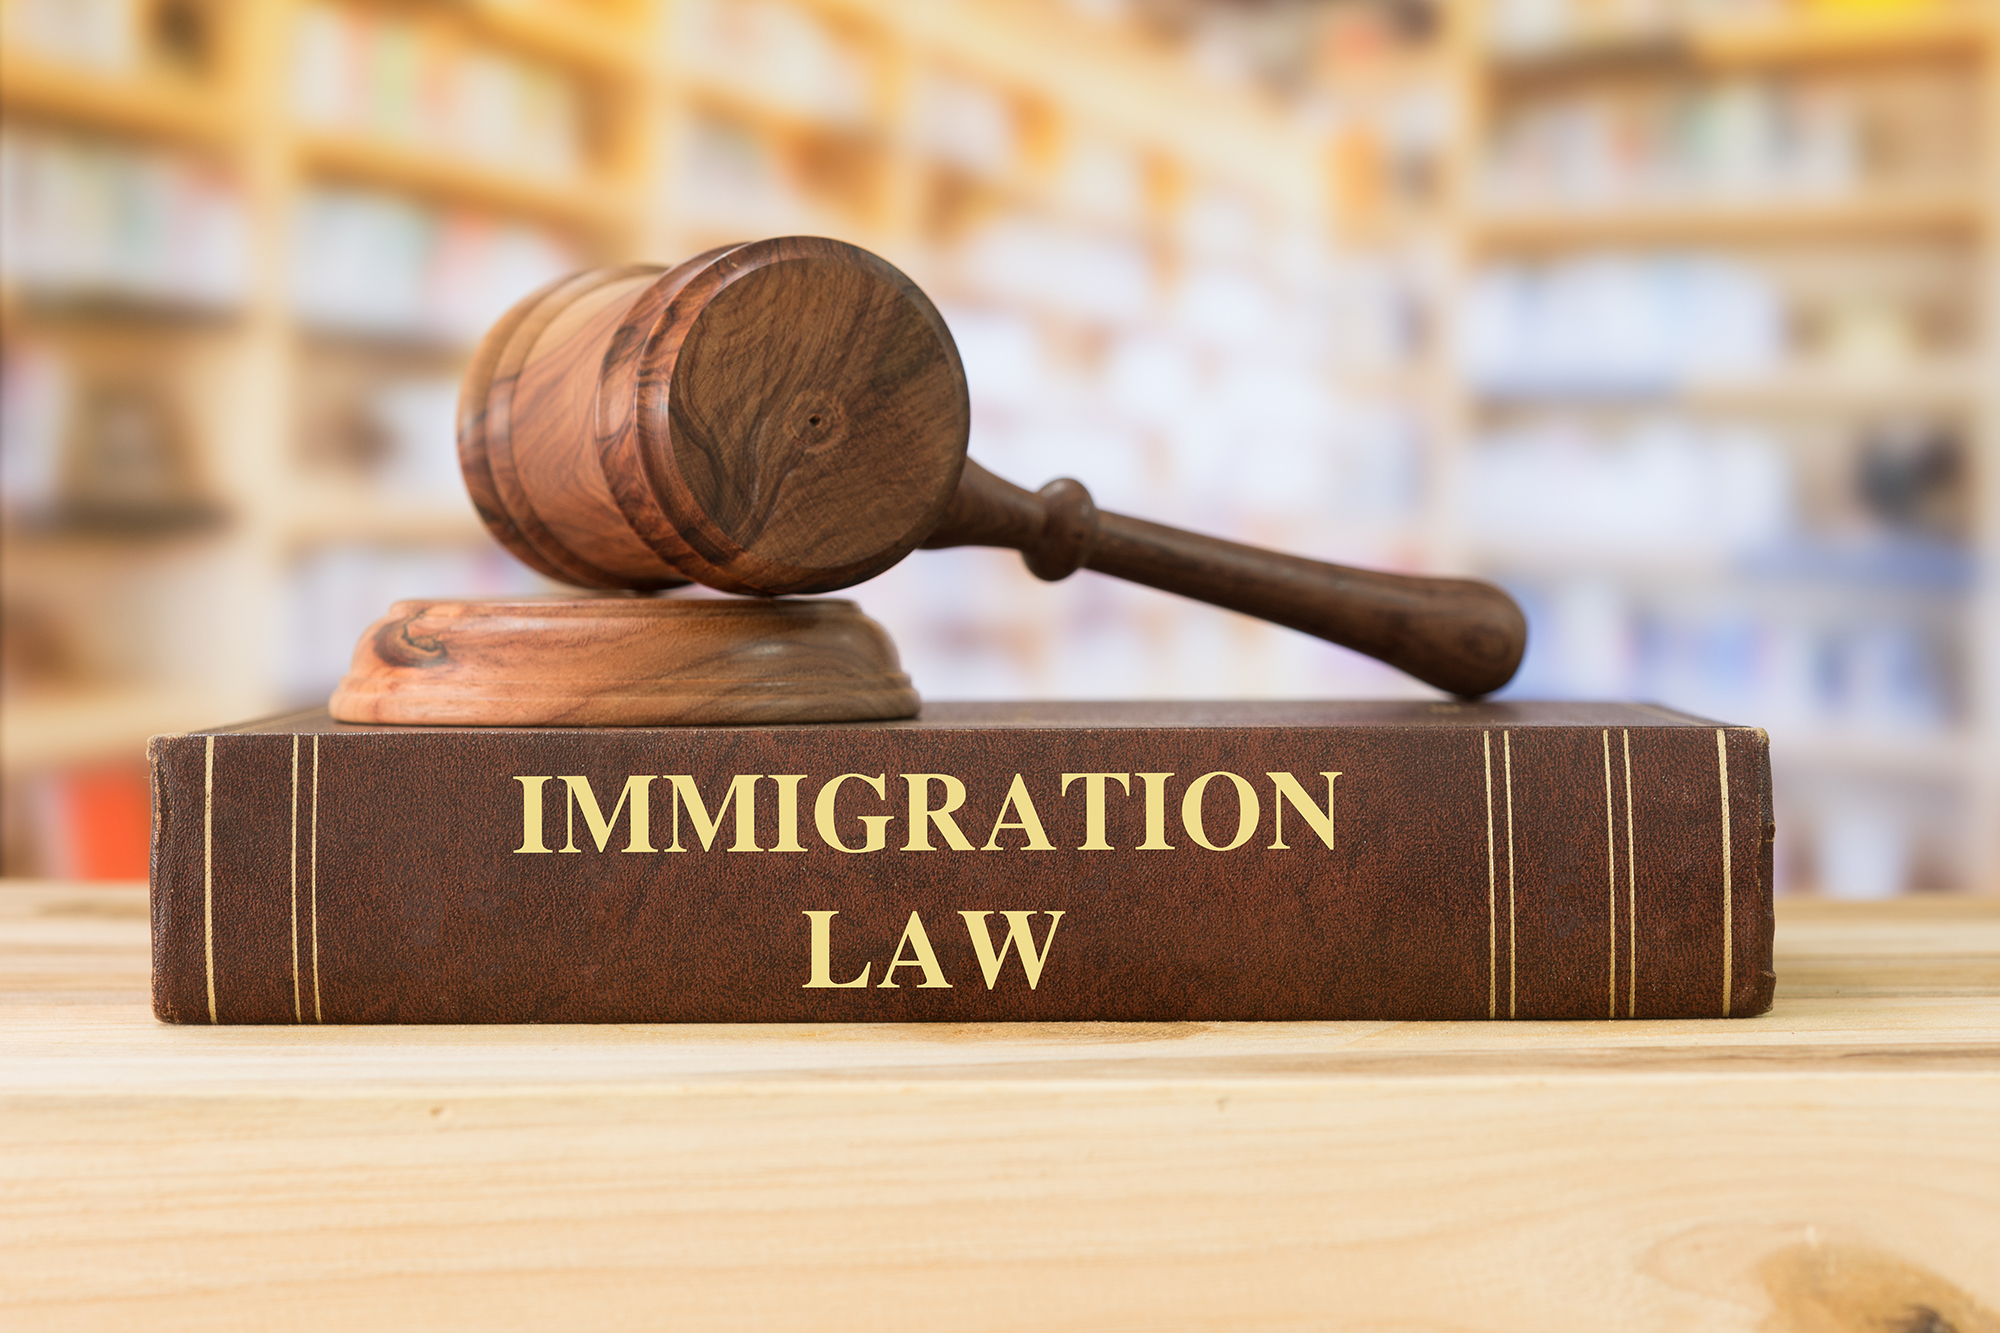 immigration Law books and judges gavel